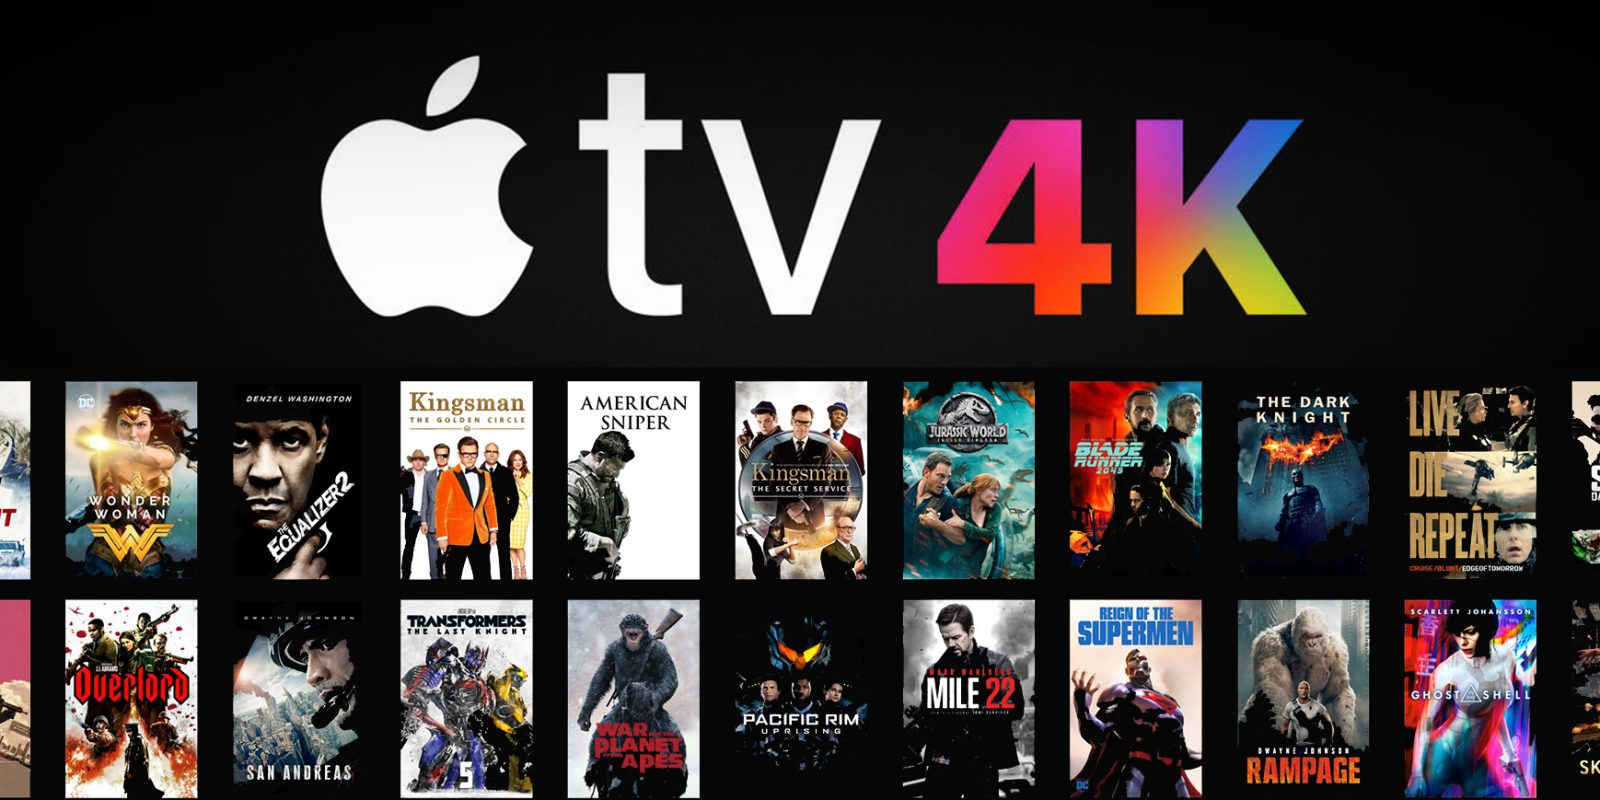 Best iTunes movie deals of the week: $10 4K sale, $1 horror rentals, more from $5